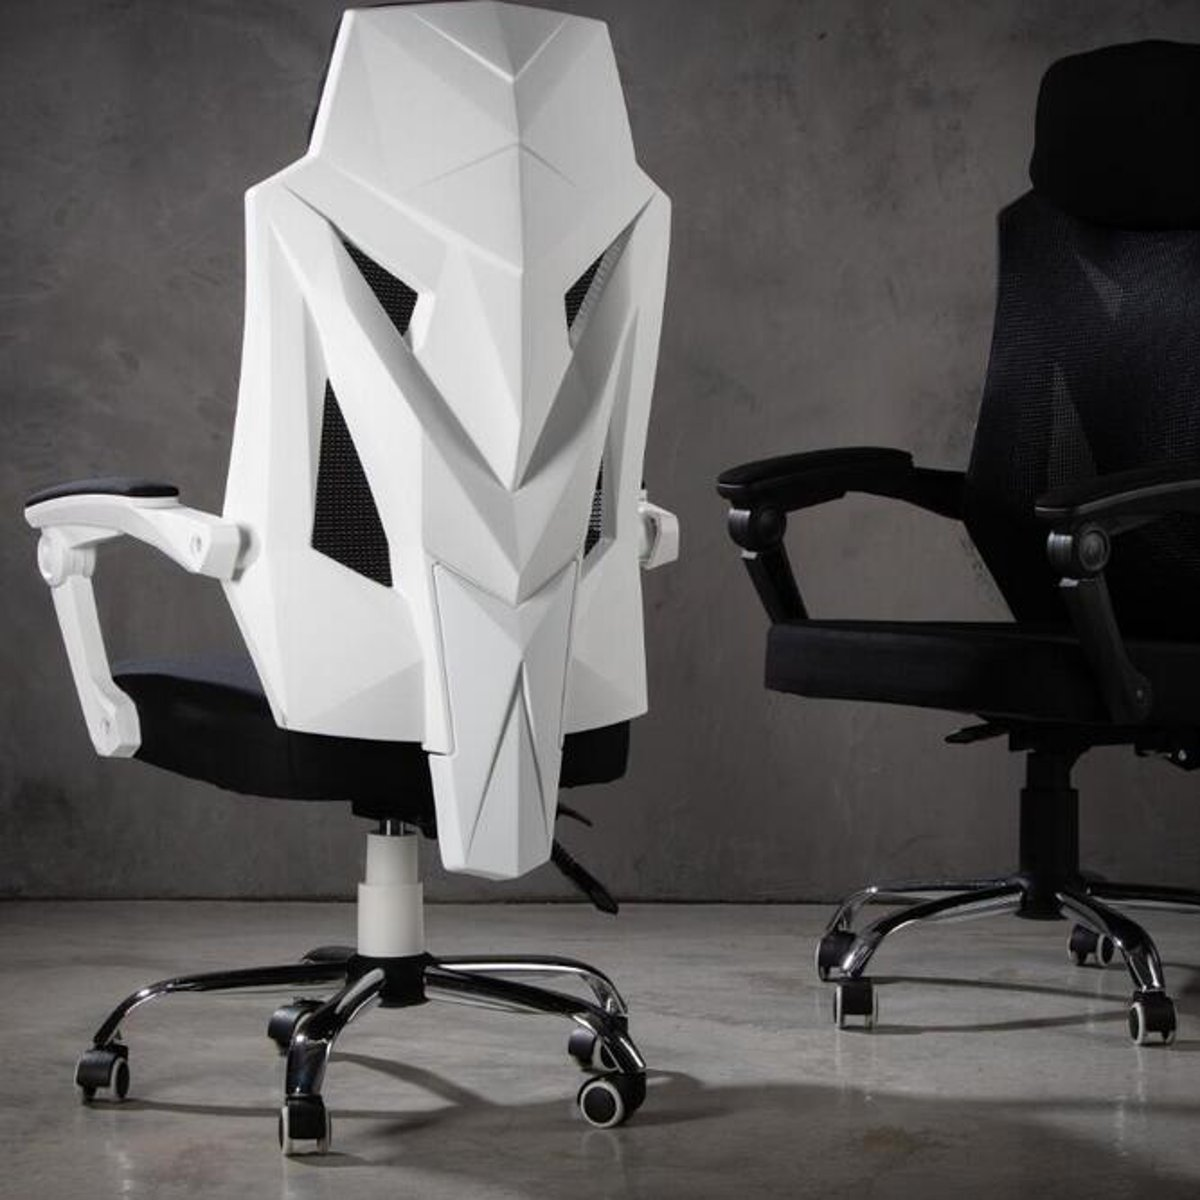 Ergonomic Office School Chairs Recliner Seat With Footrest Mesh Chair High Back Racing Gaming Chair Furniture Computer Chair